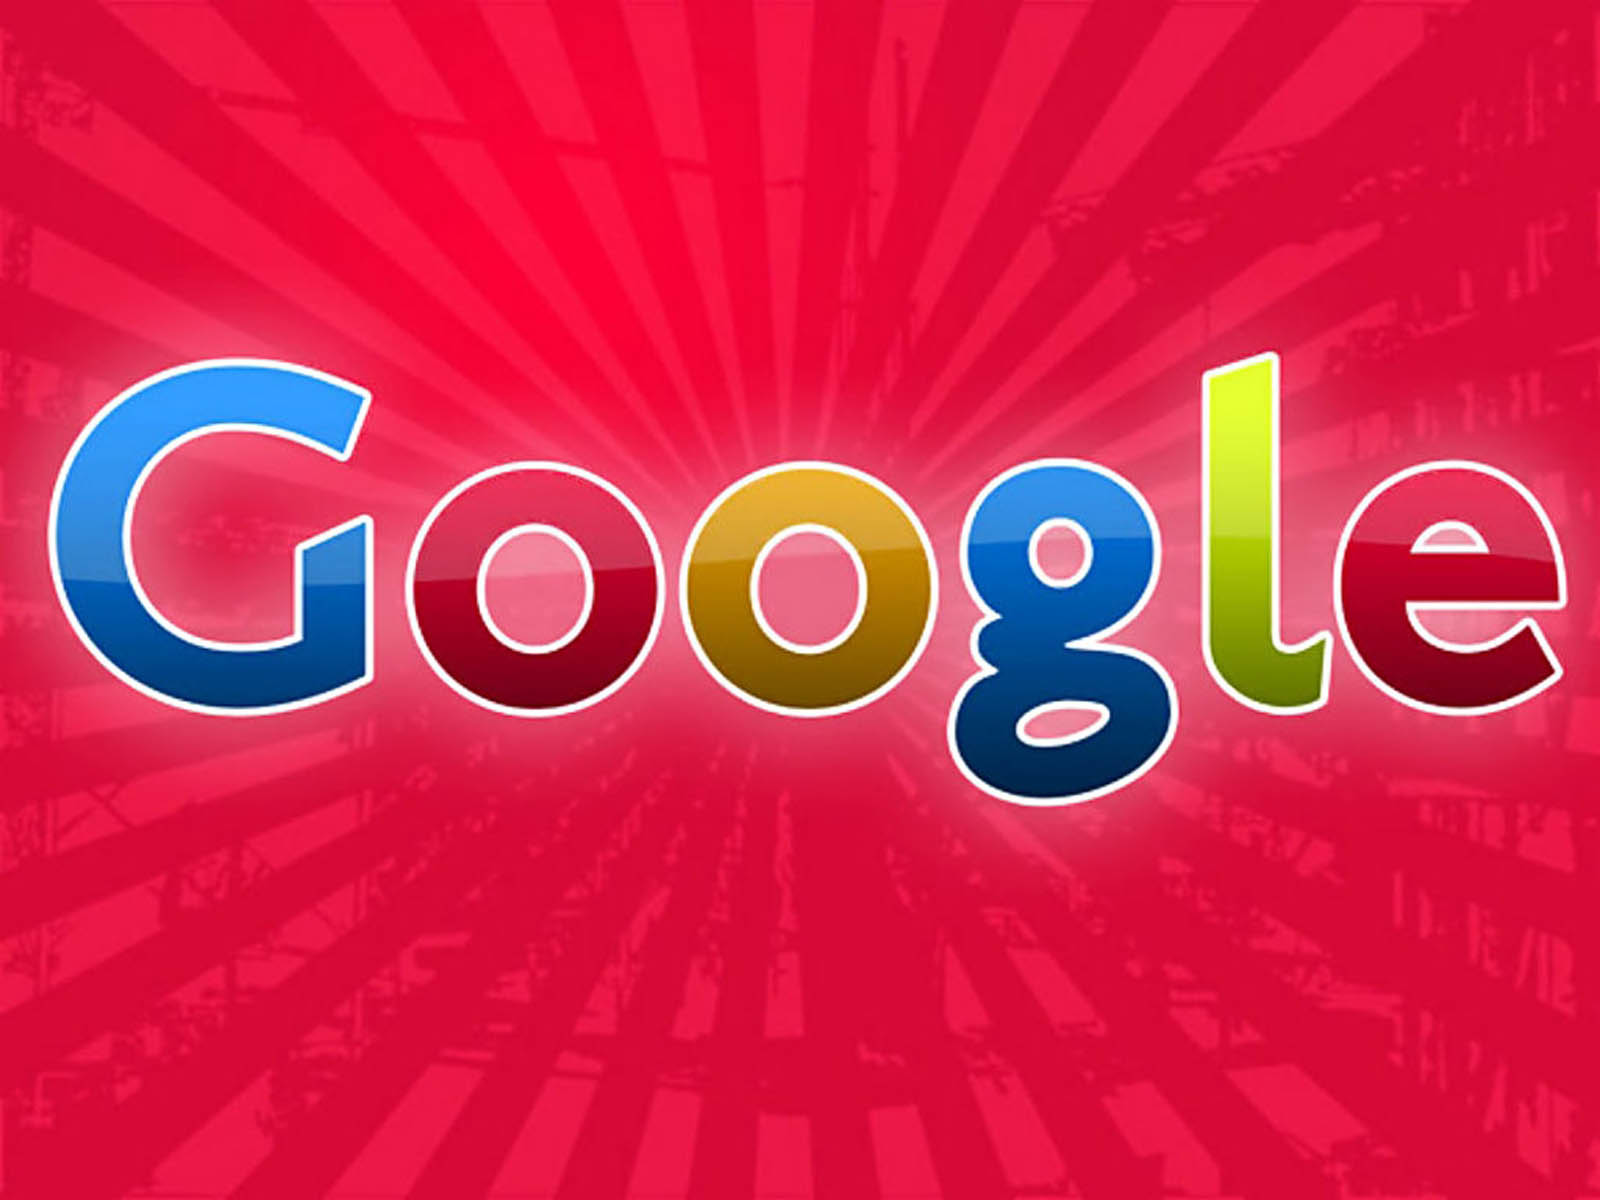 Google themes free - Wallpaper Free Google Wallpapers And Backgrounds